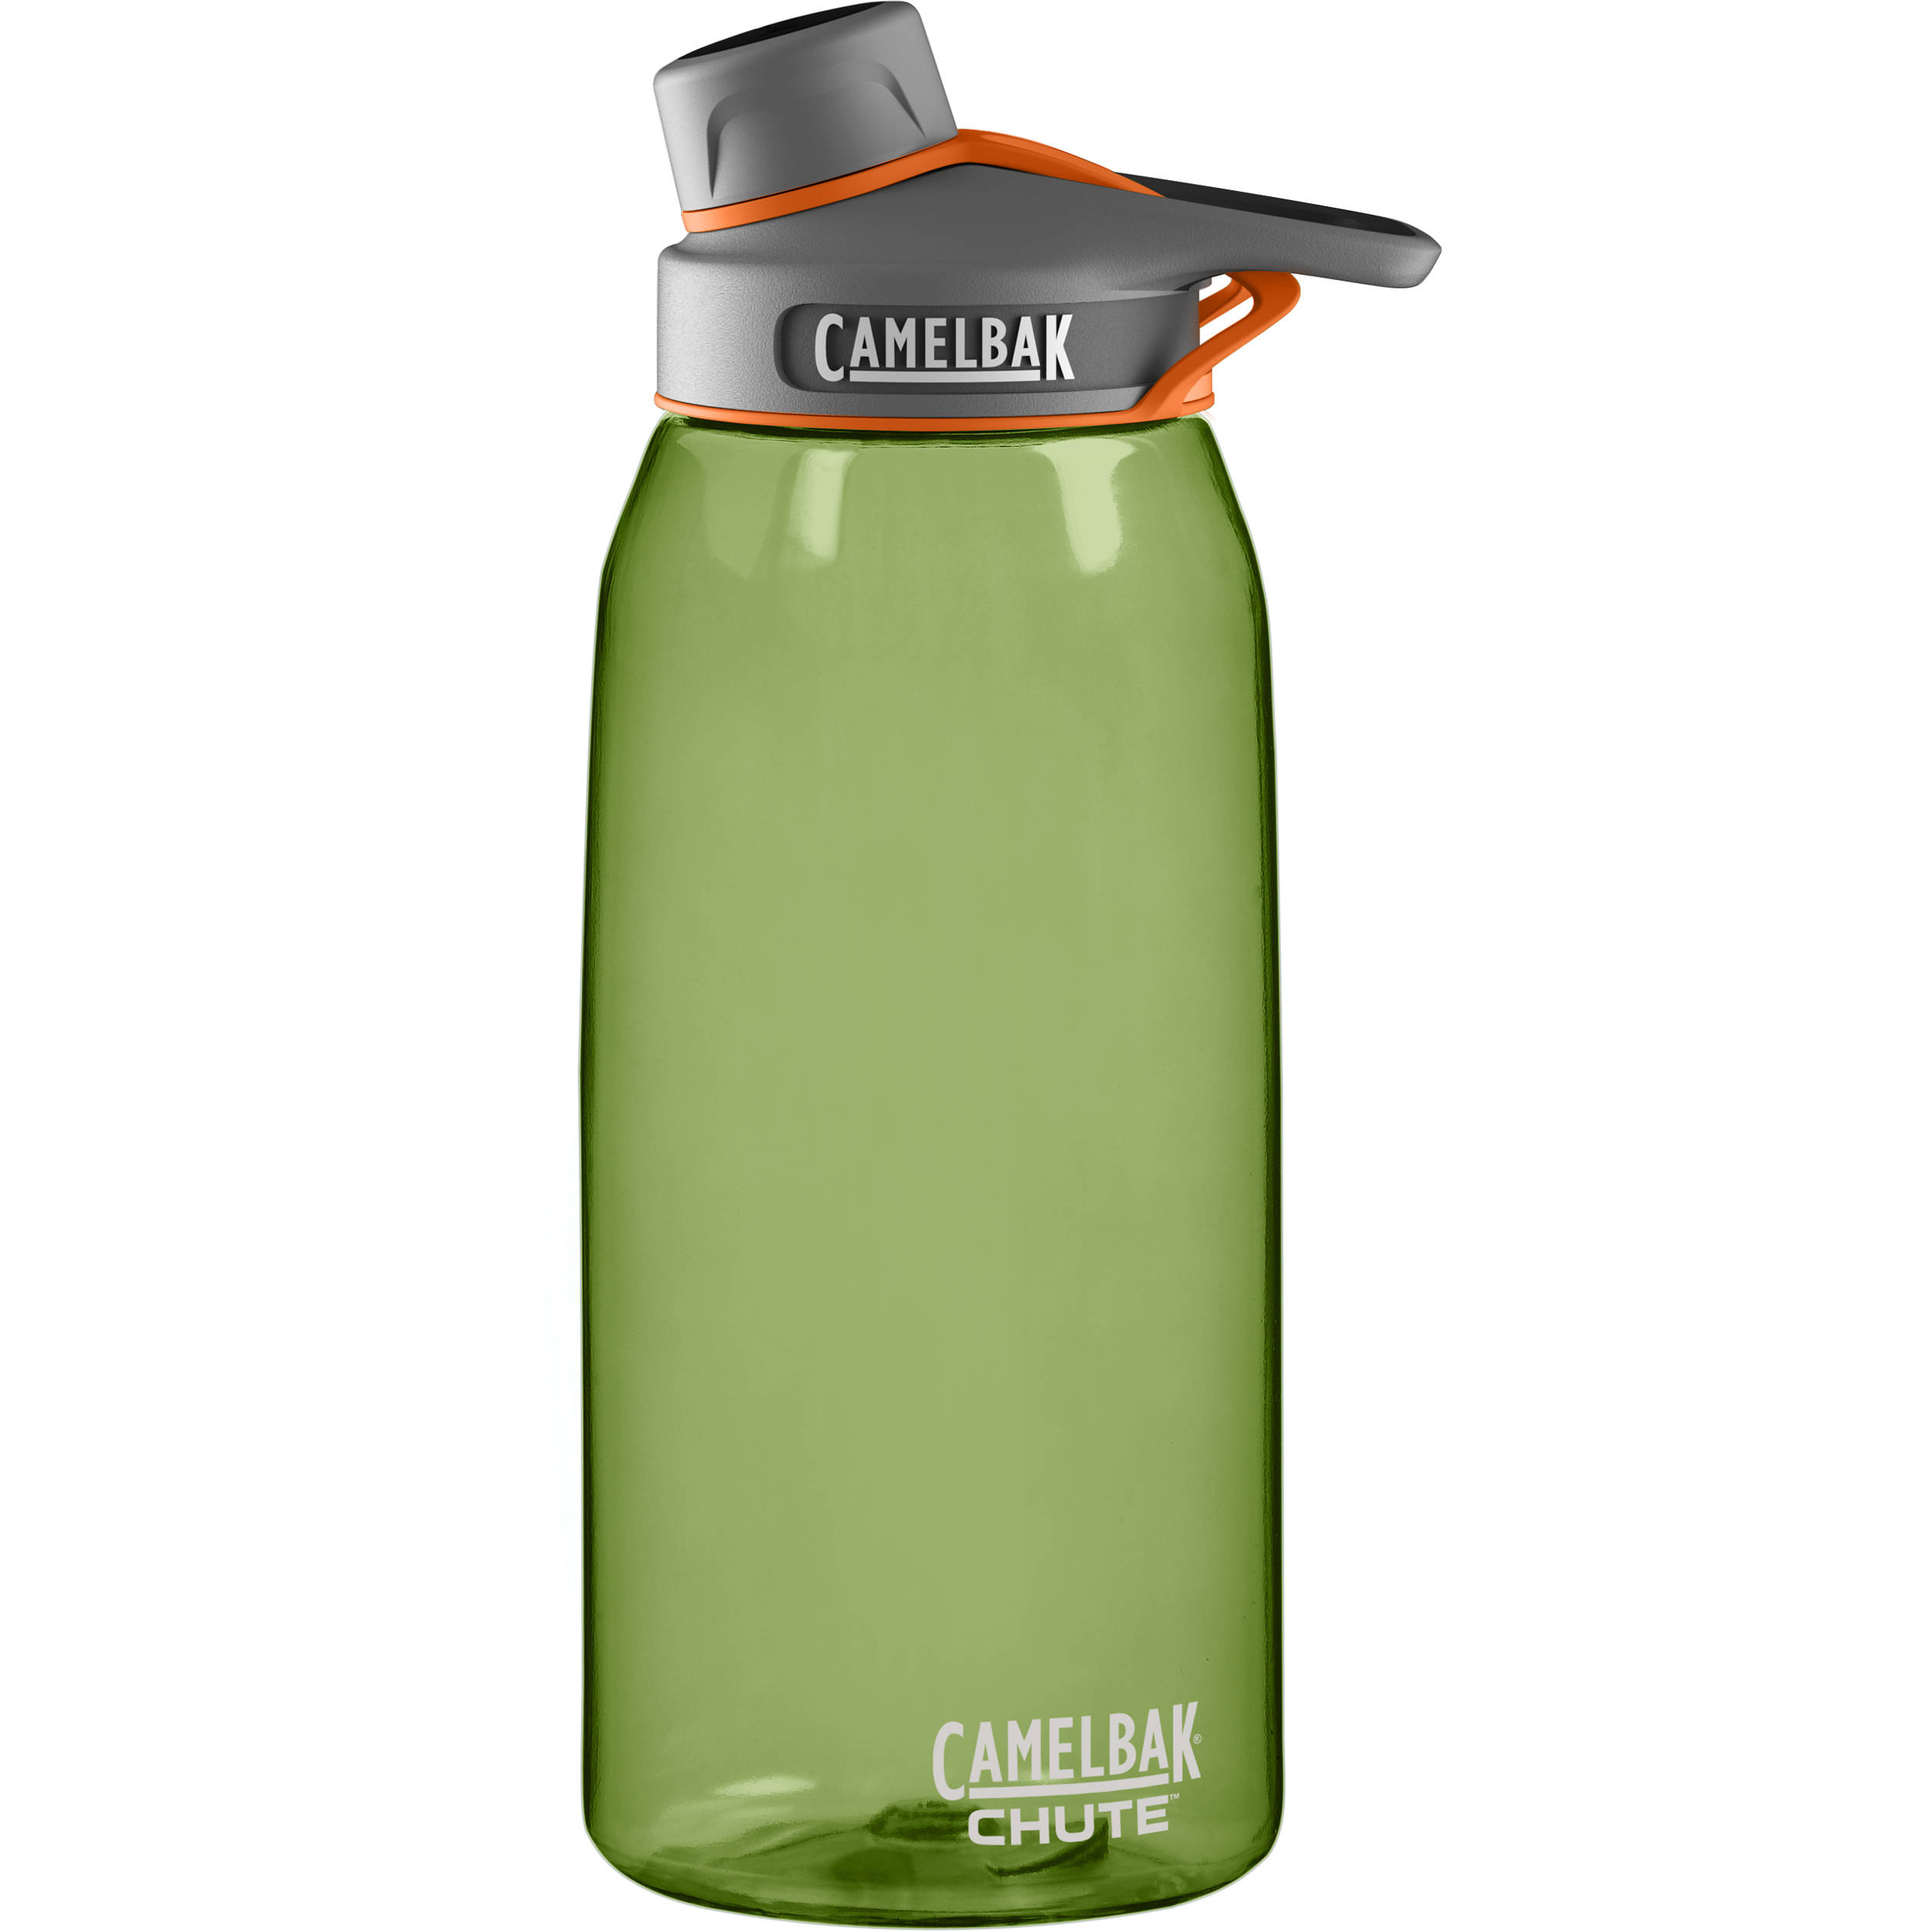 camelbak chute water bottle 32 fl oz sage 53517 b h photo. Black Bedroom Furniture Sets. Home Design Ideas